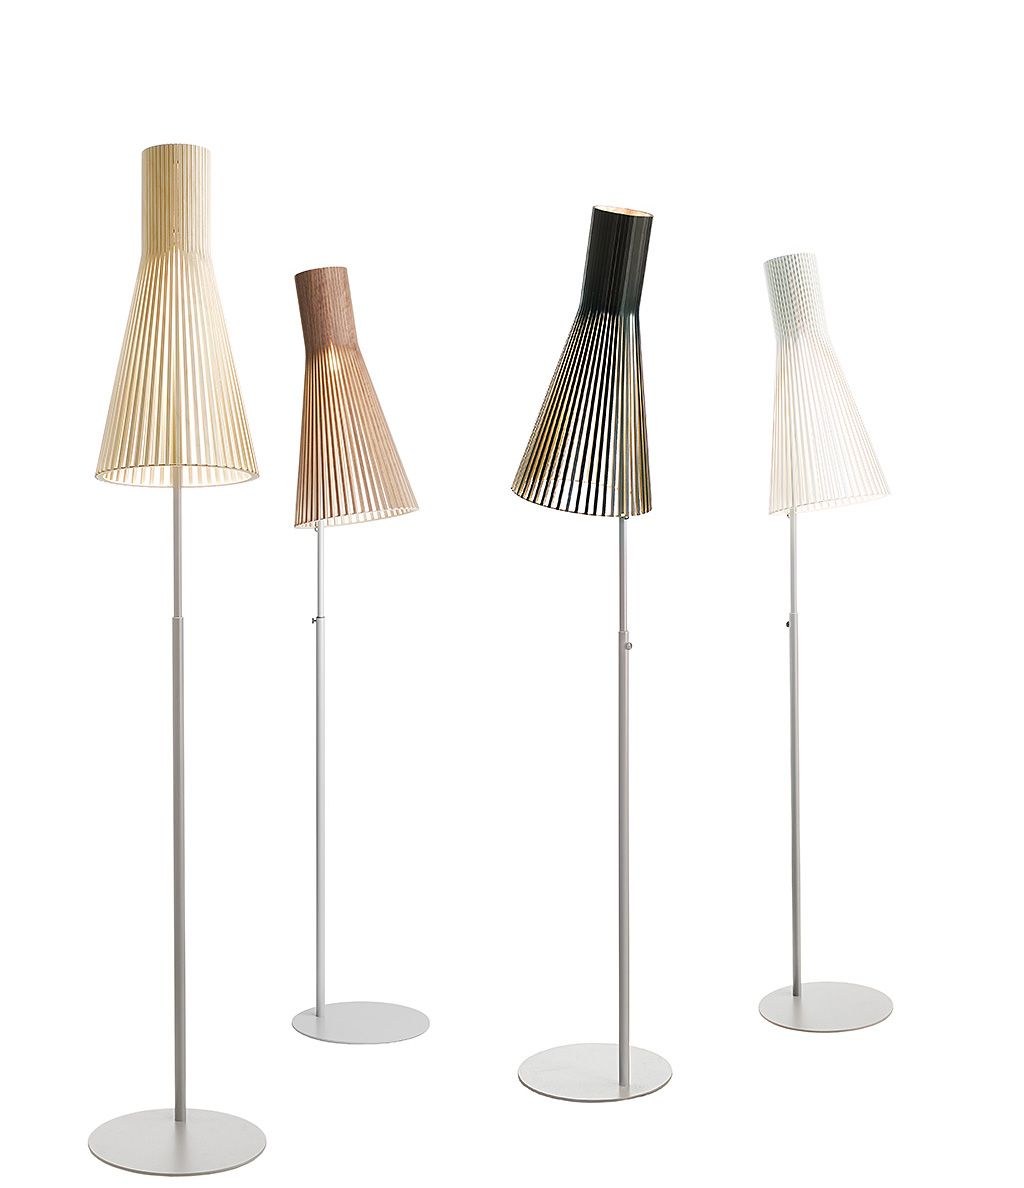 Secto 4210 | Secto Design | Lamp | Pinterest | Luci, Lampade and ...